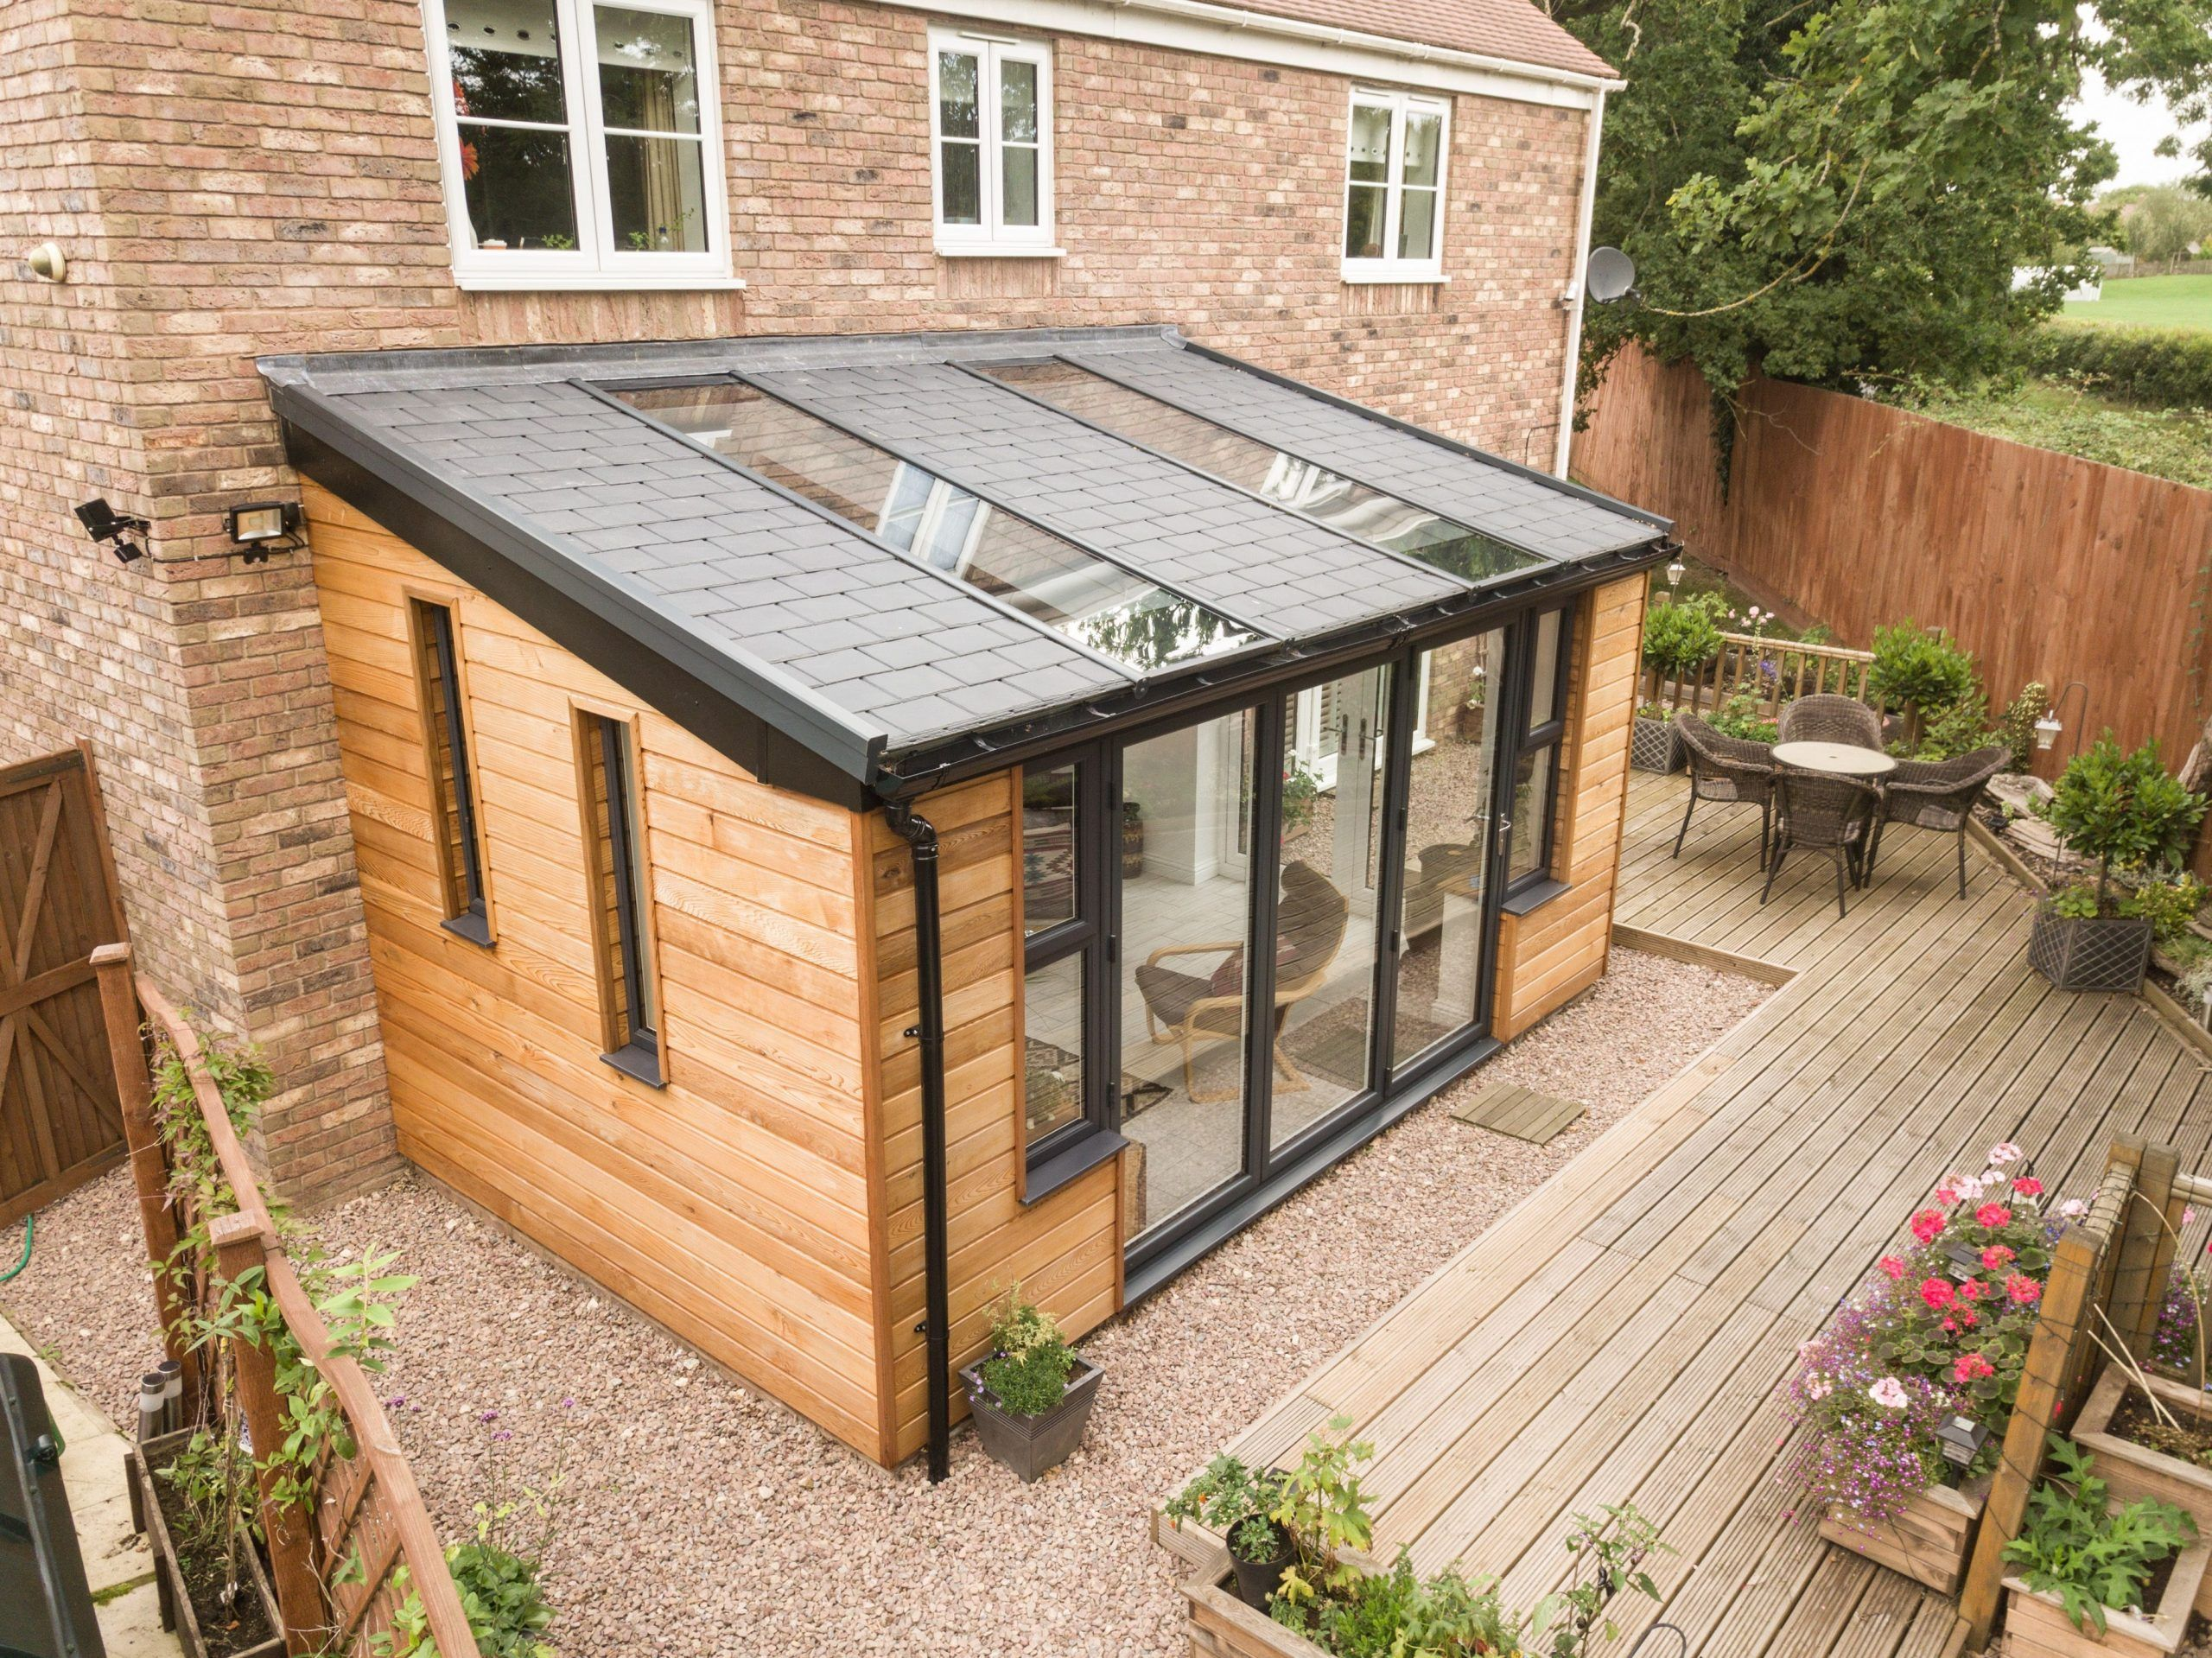 Ultraroof Extension With Cladding Extensionideas Cladding Extension Extensionideas Ul In 2020 Garden Room Extensions Tiled Conservatory Roof House Extension Design